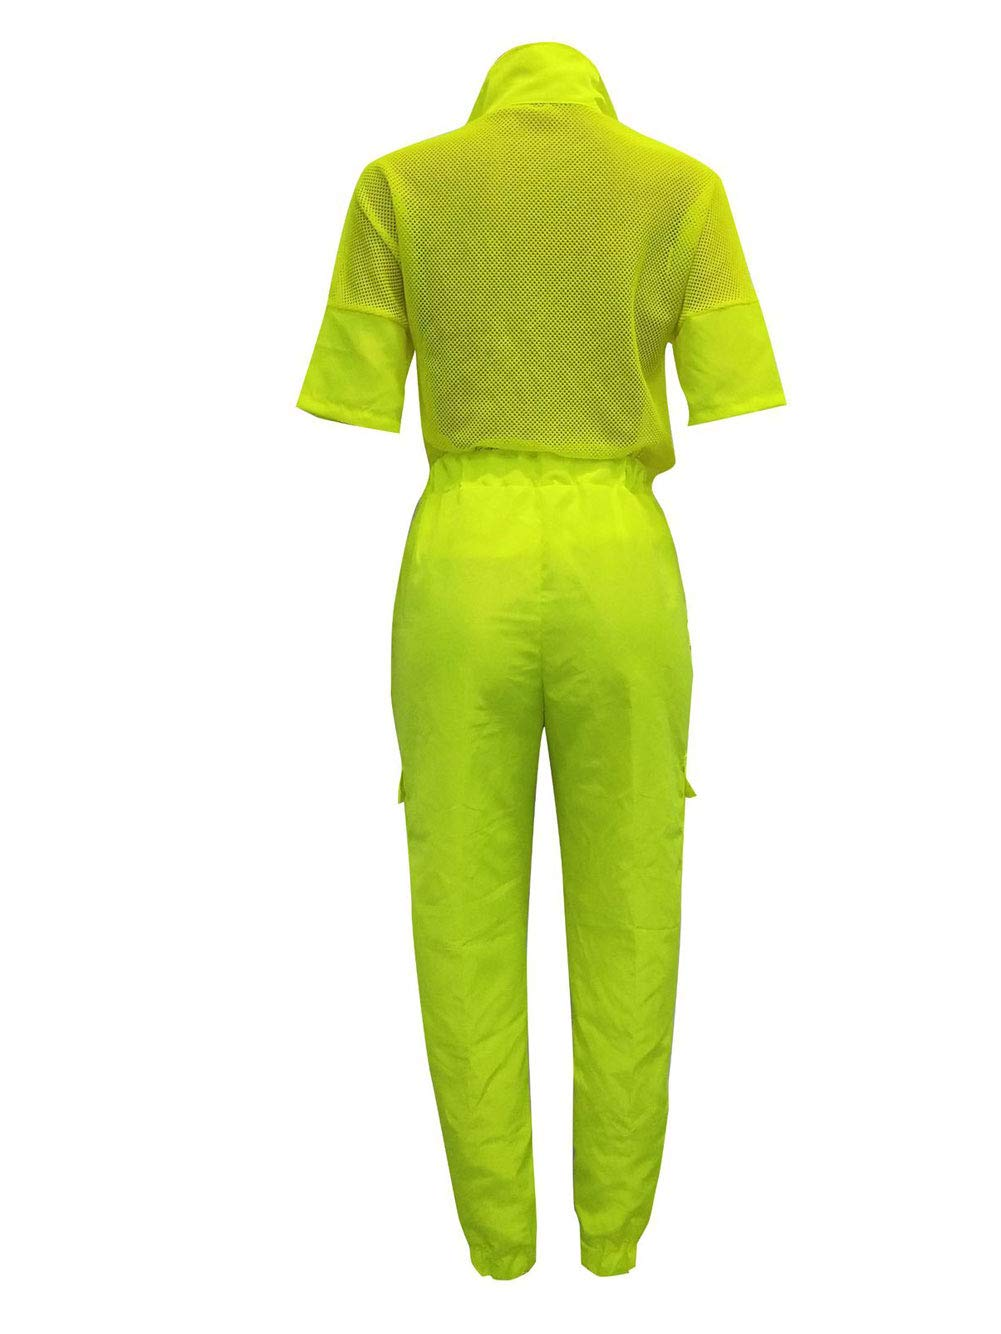 Track Suit for Women Set - Breathable Sportswear Sets 2 Piece Outfits Fluorescent Green